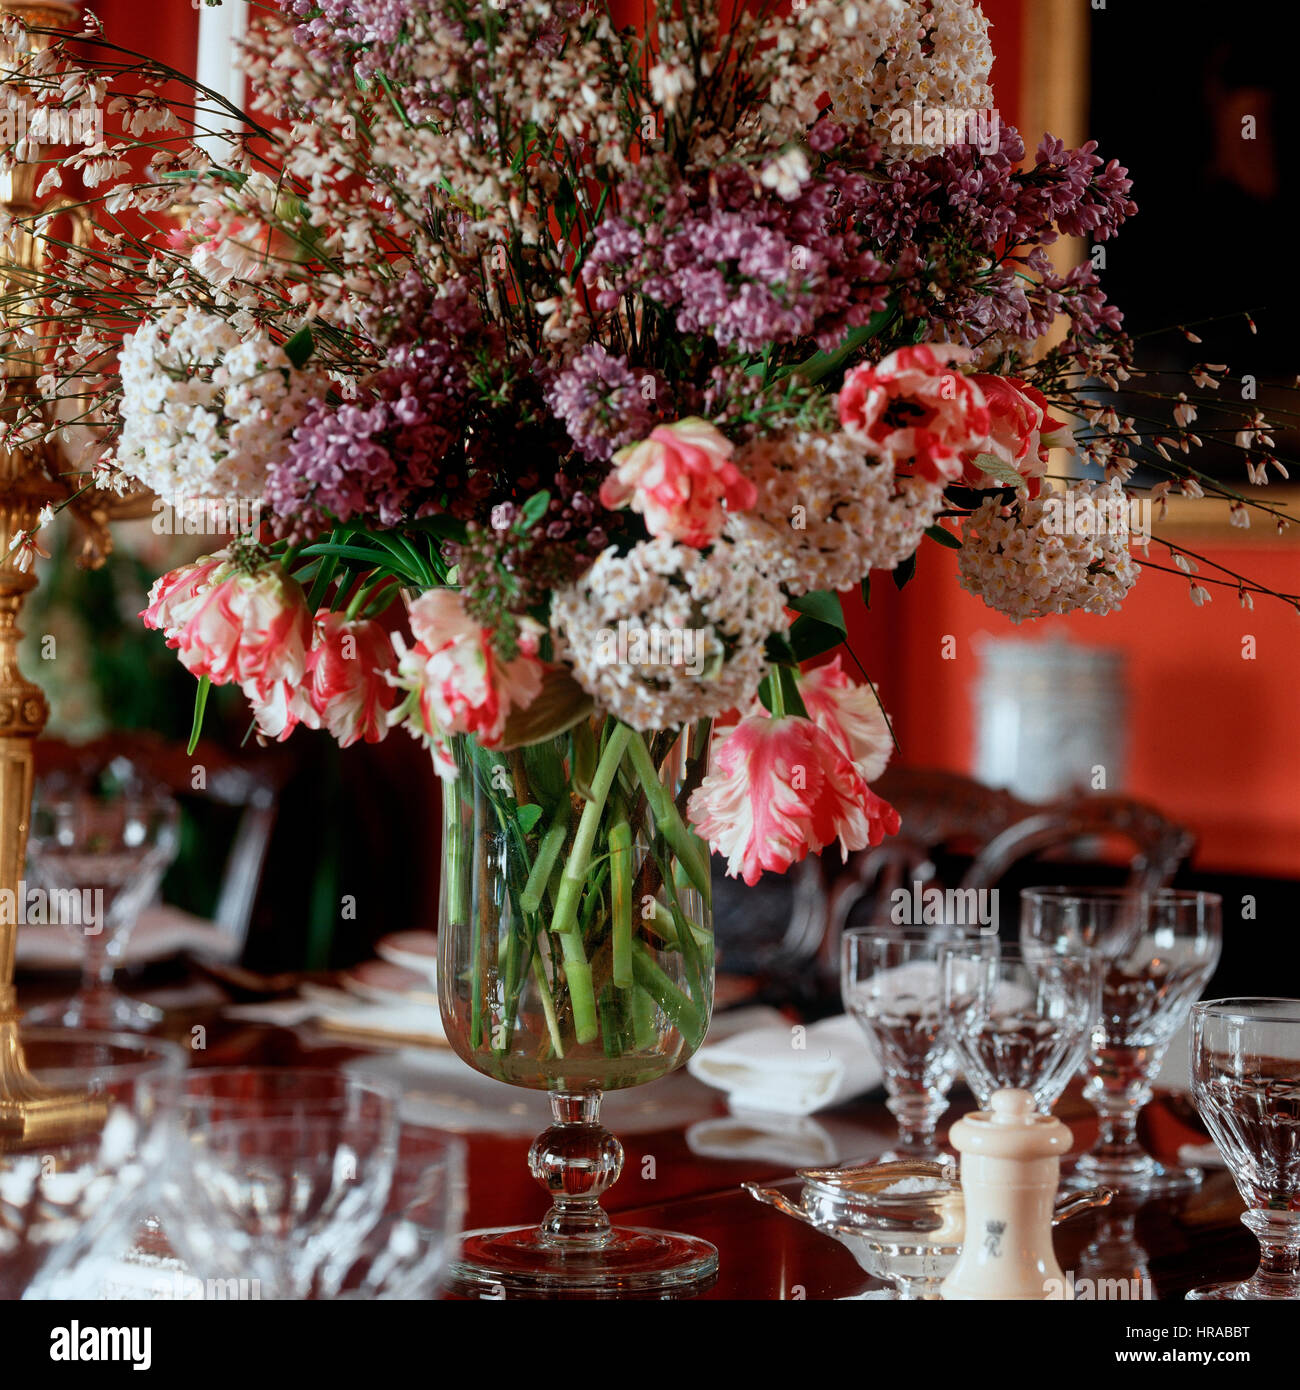 A vase of flowers on a dining table. - Stock Image